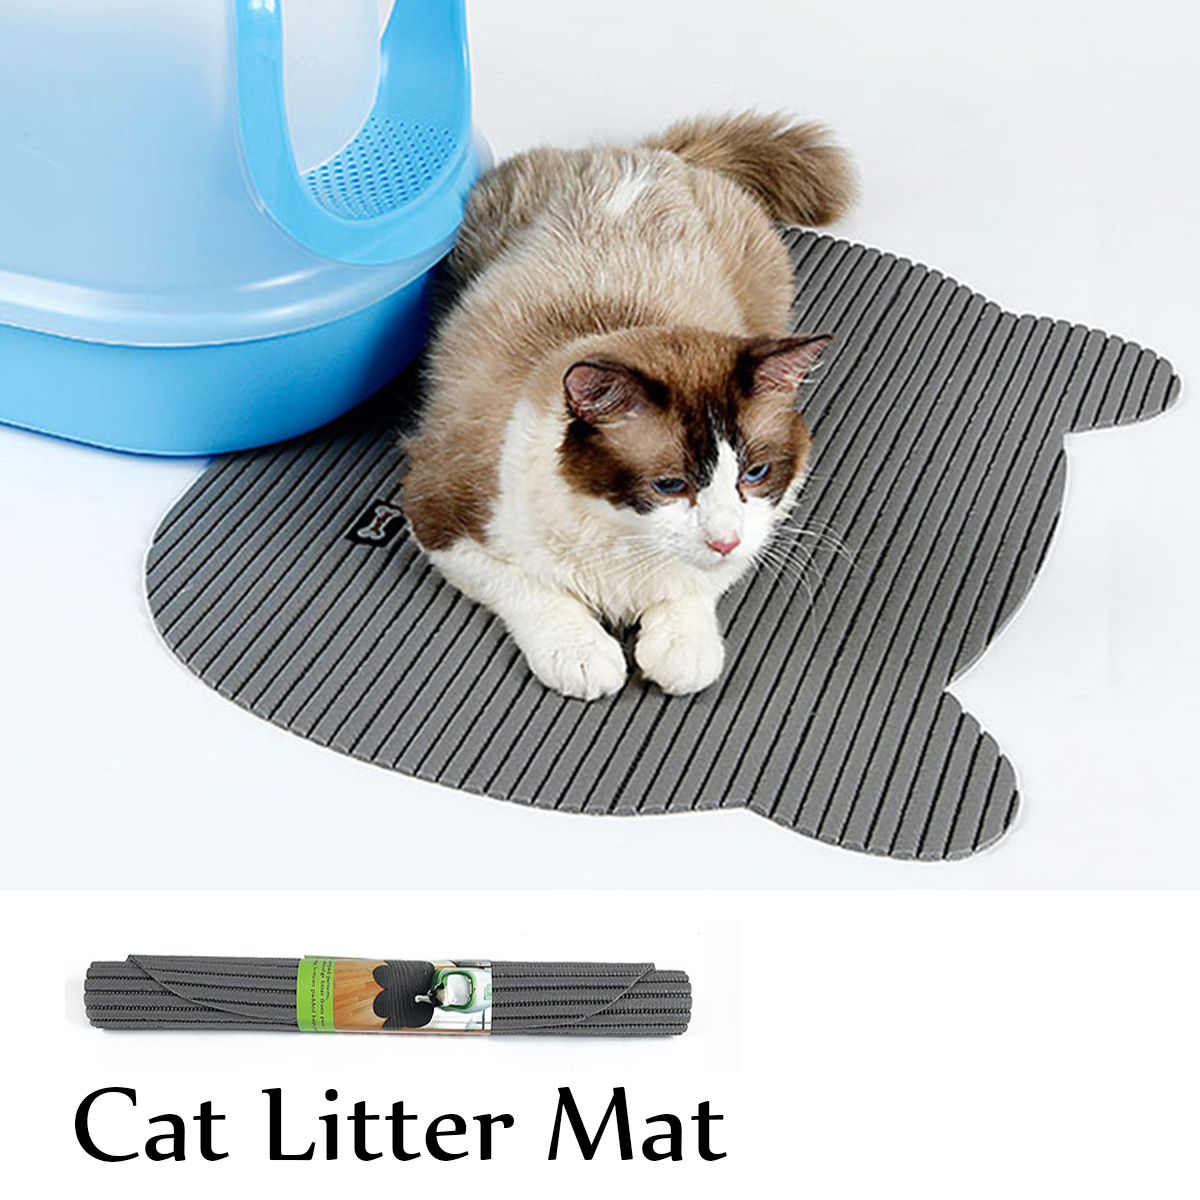 Litiere Chaton Tapis De Litière Pour Chat Eva Two Layers Chaton Scatter